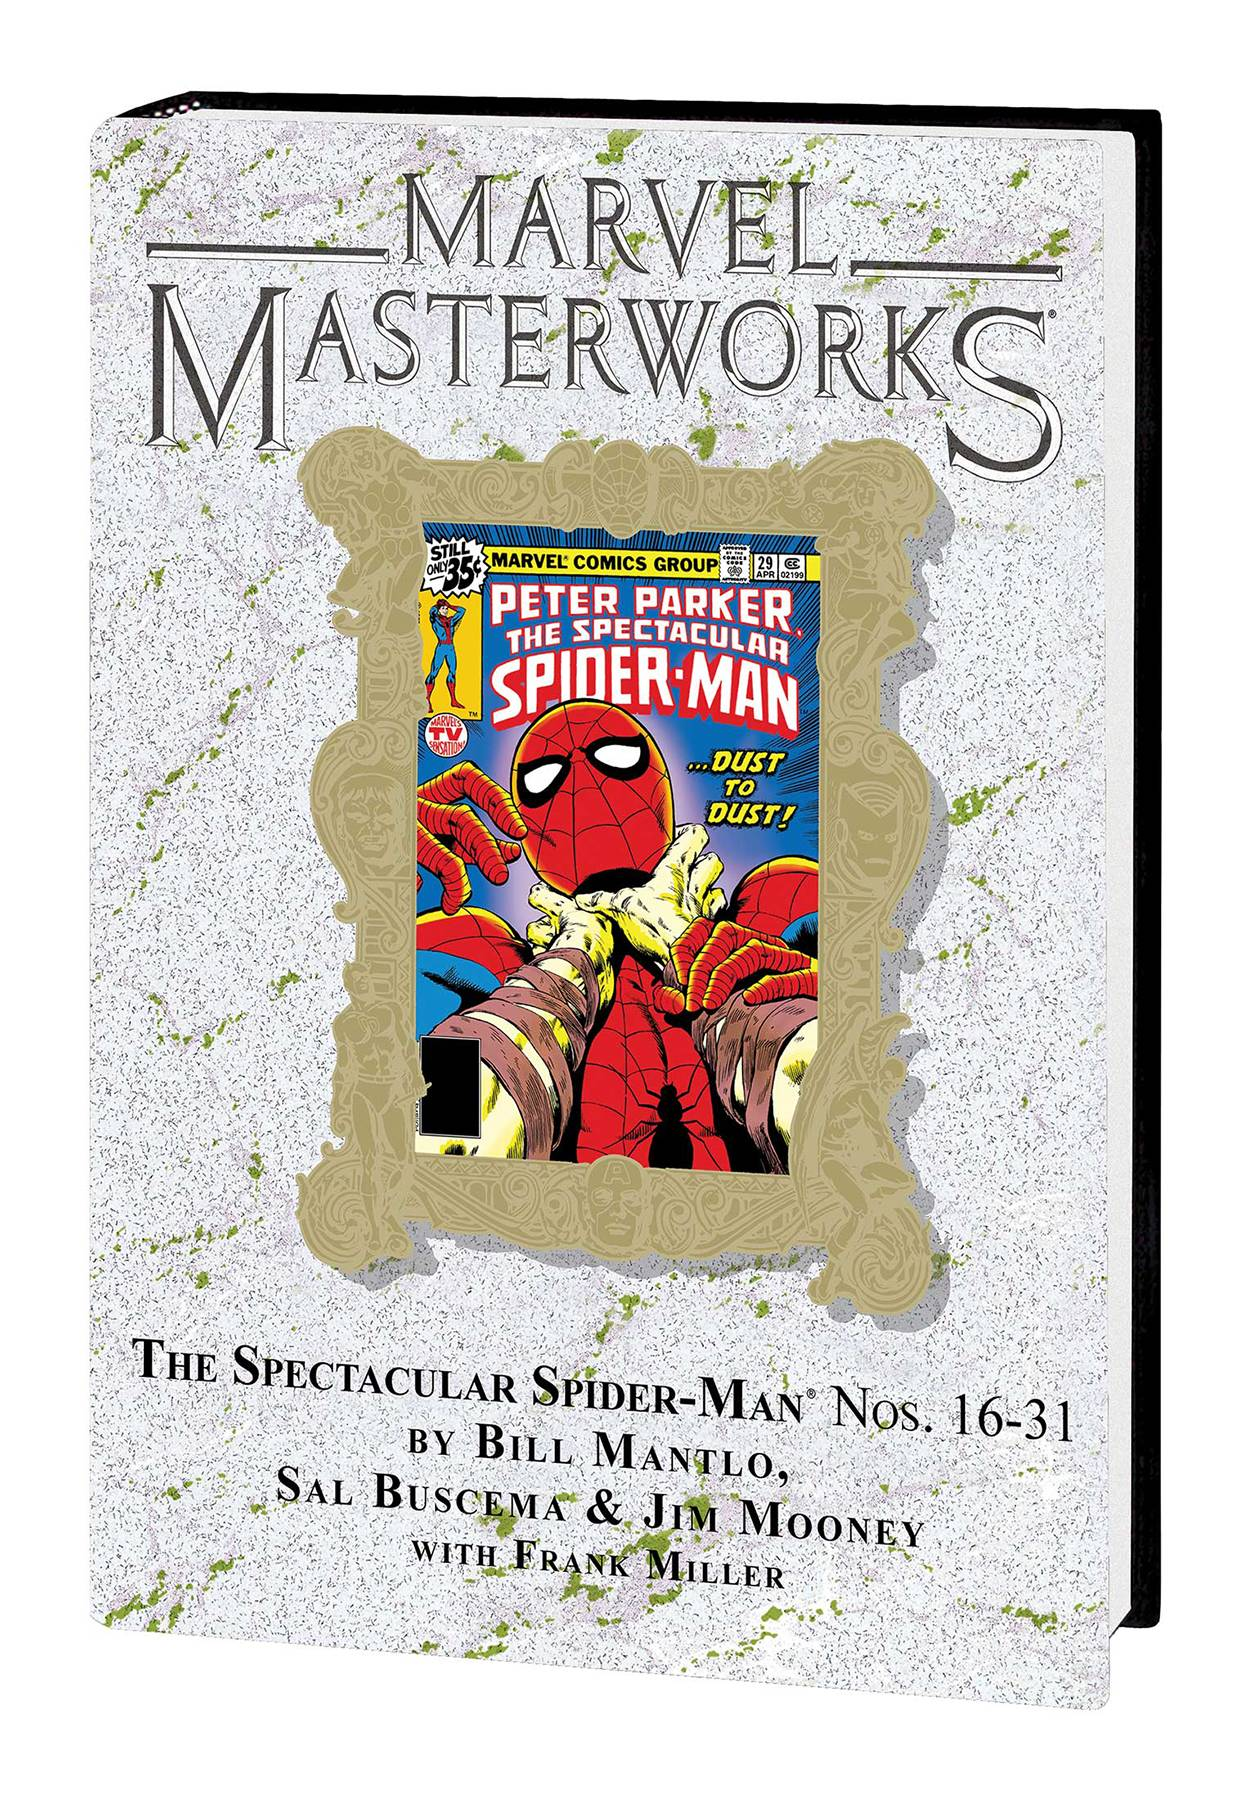 MMW SPECTACULAR SPIDER-MAN HC VOL 02 DM VAR ED 276